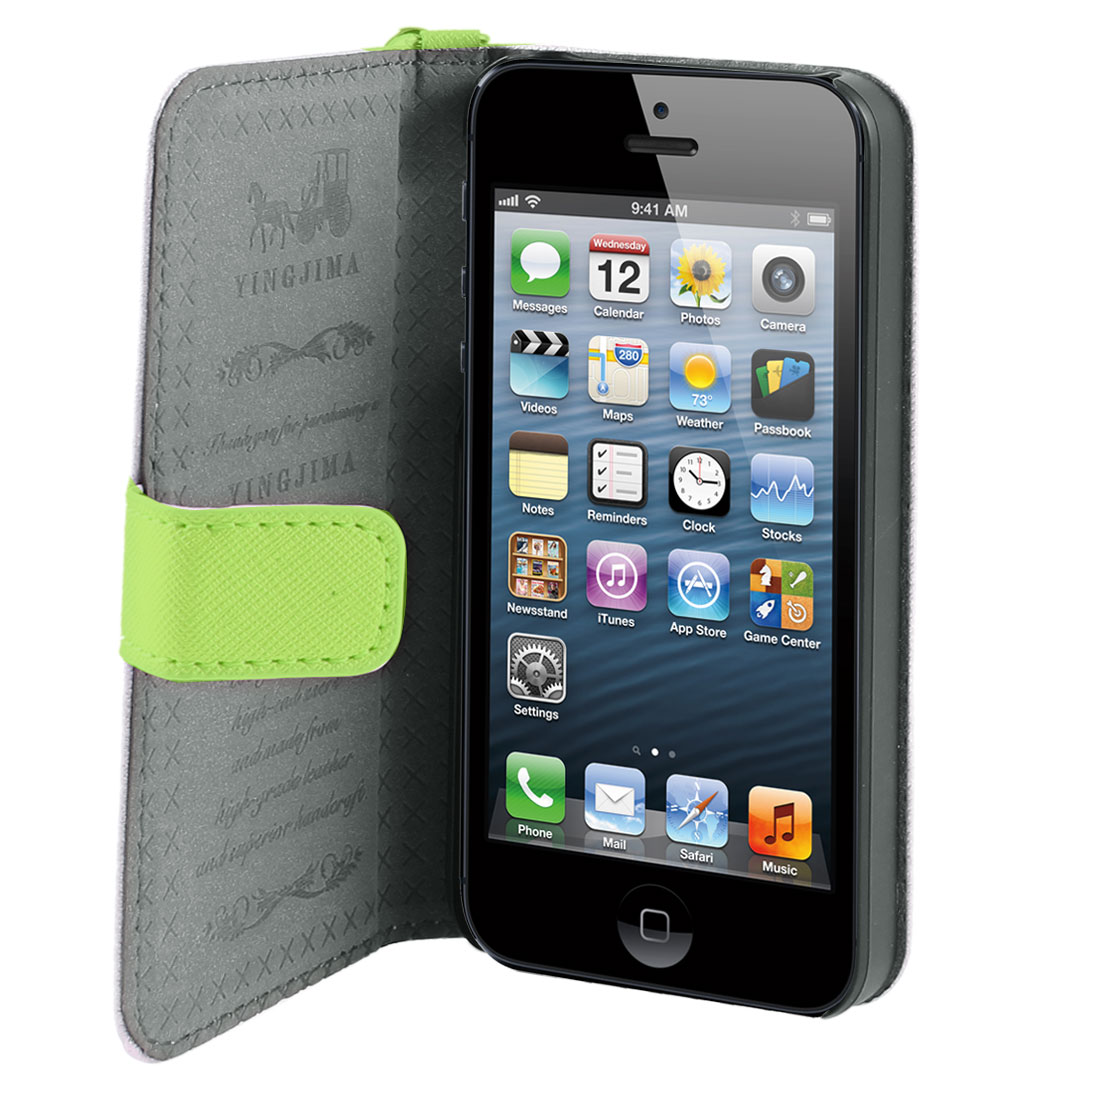 Green Faux Leather Magnetic Flip Case Cover Pouch Holder for iPhone 5 5G 5th